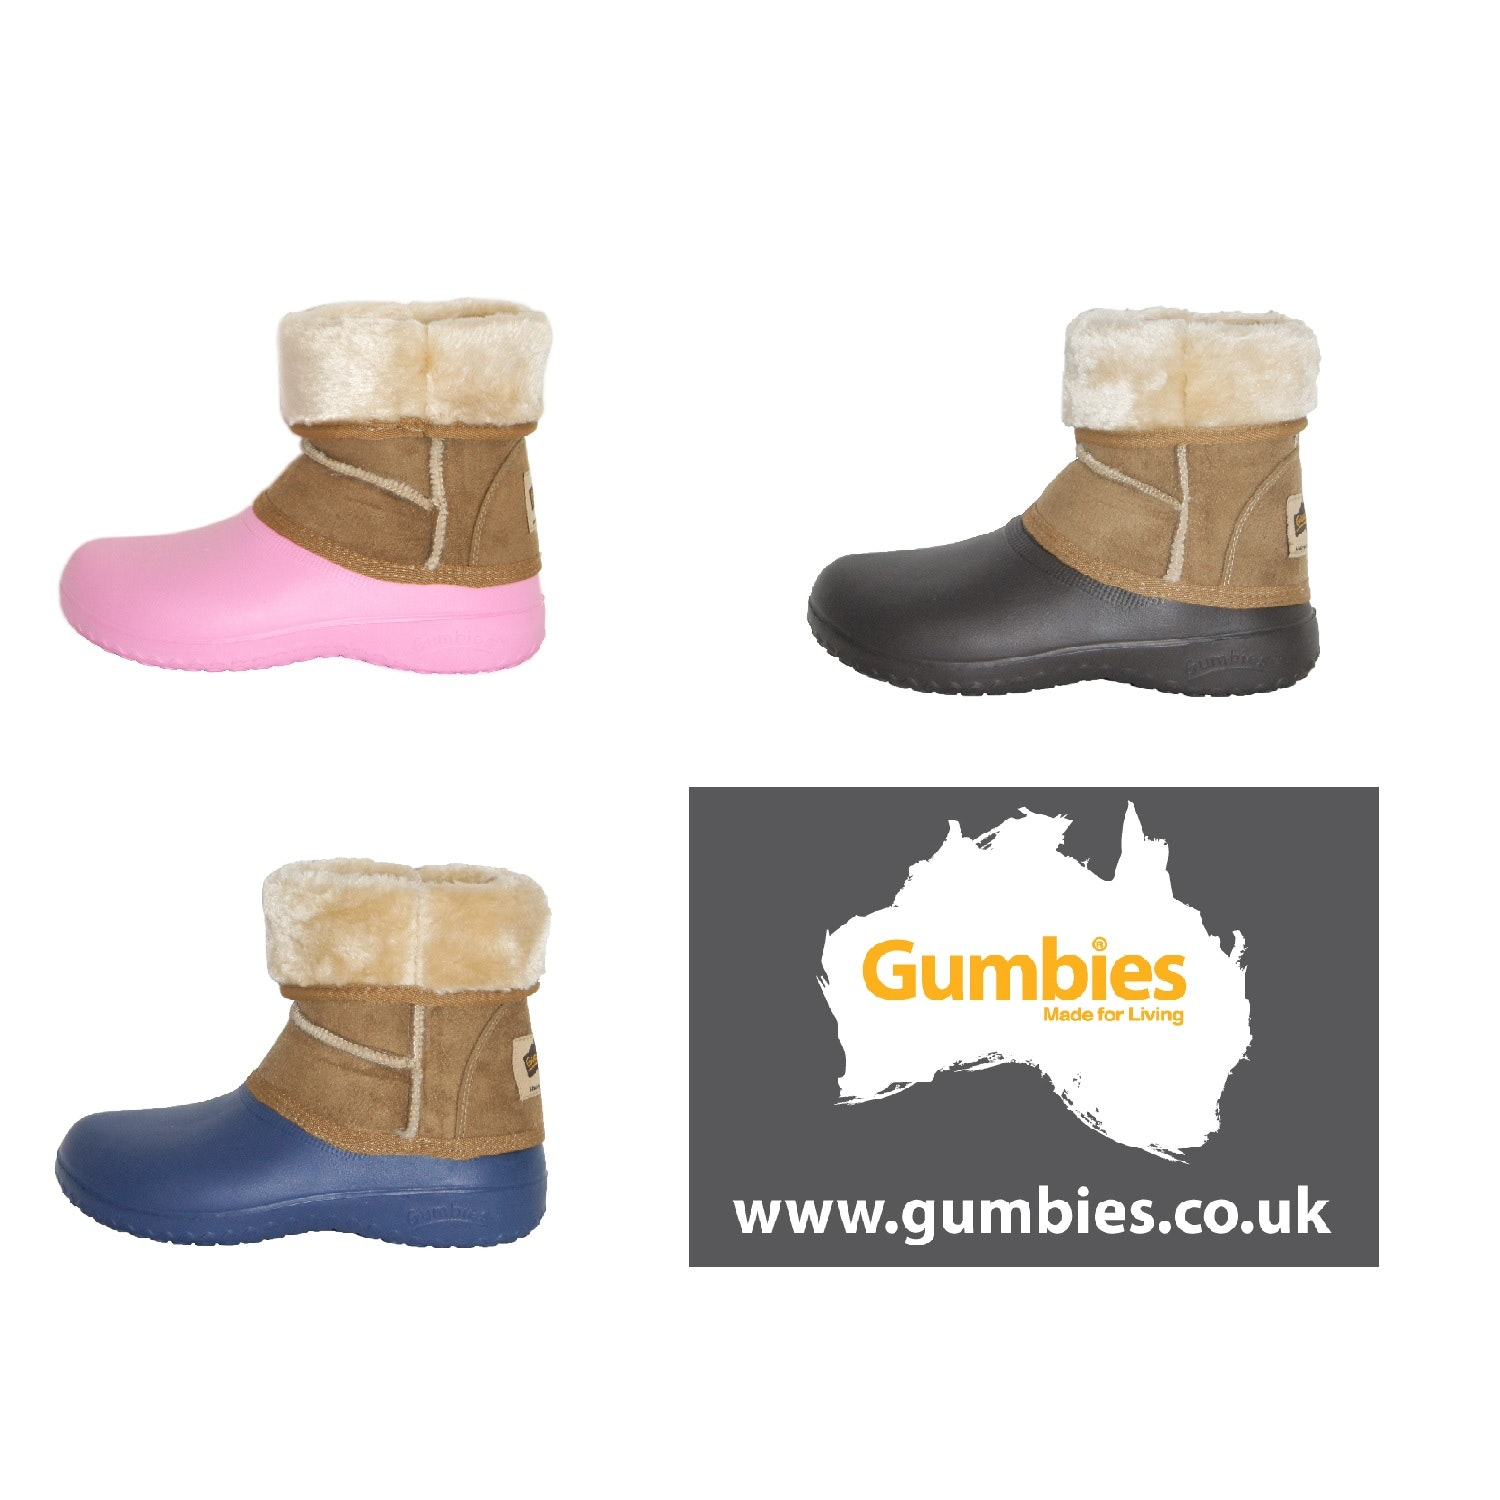 Gumboot gumbies comp image